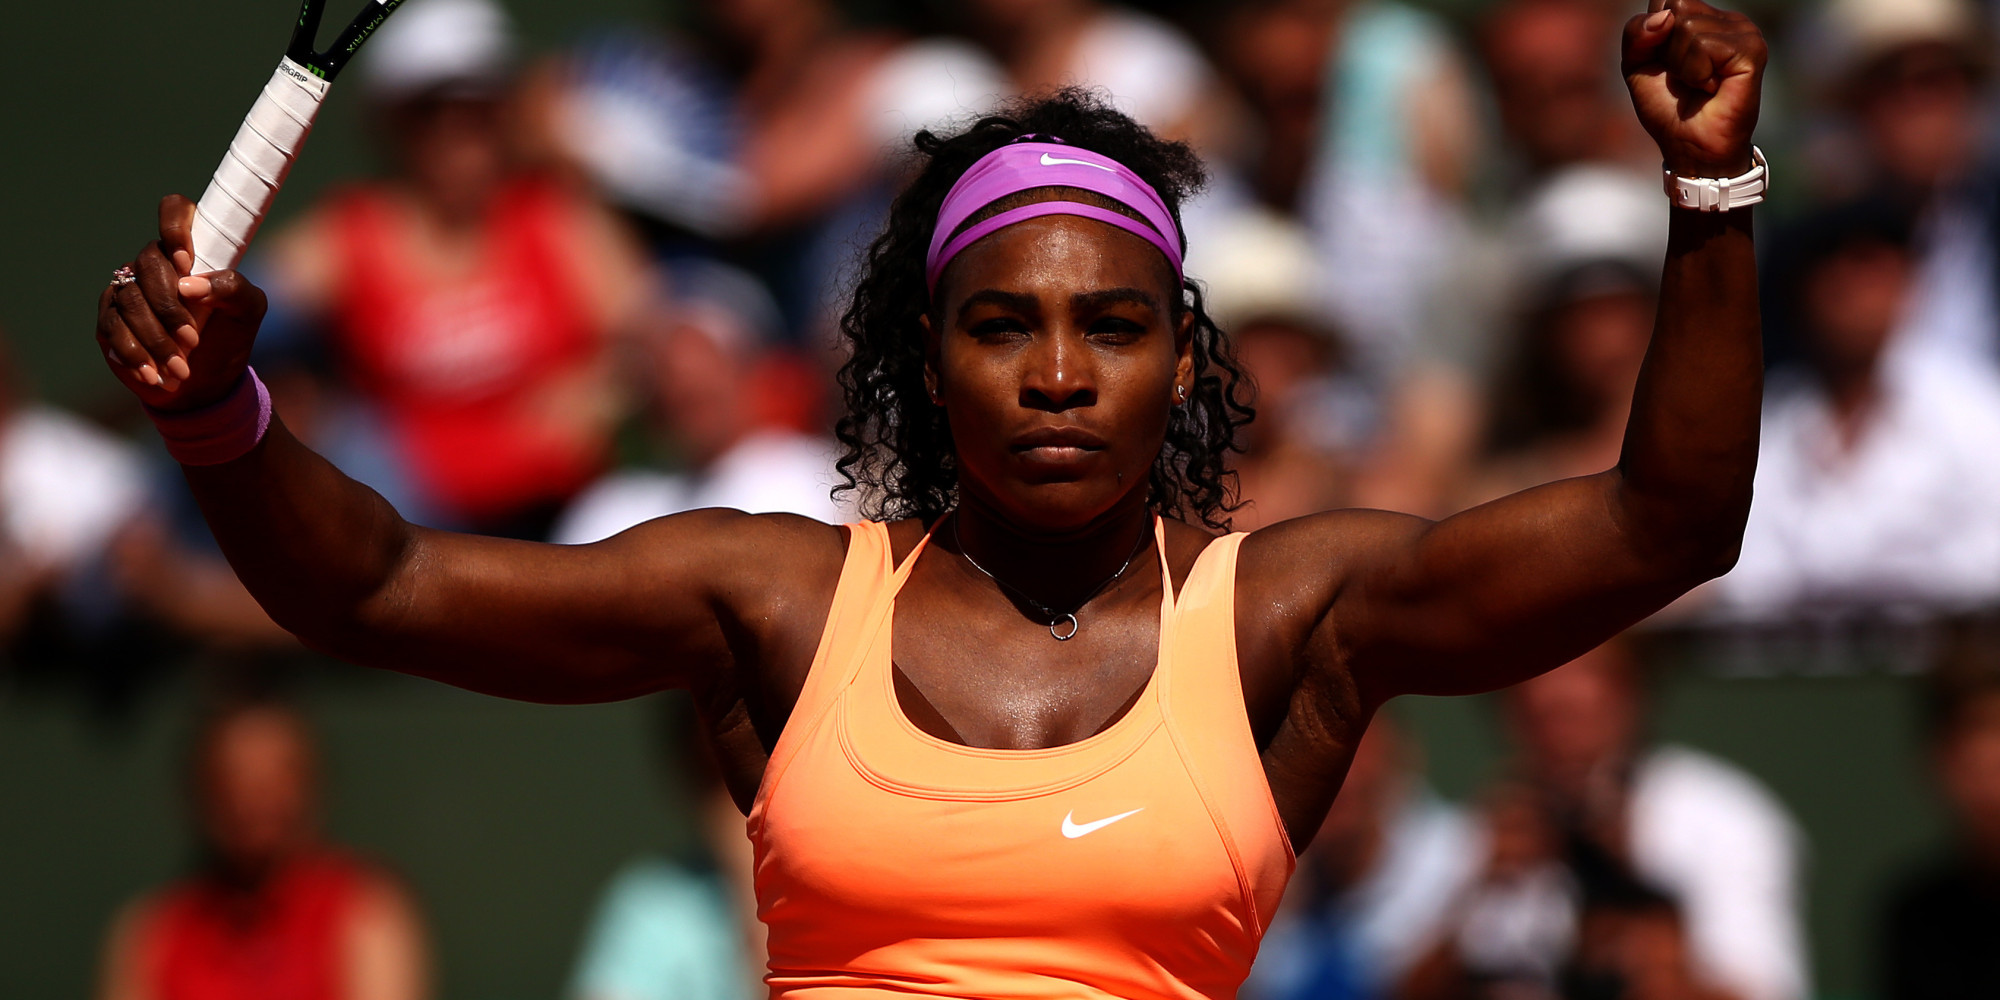 Serena Williams I Had To e To Terms With Loving Myself